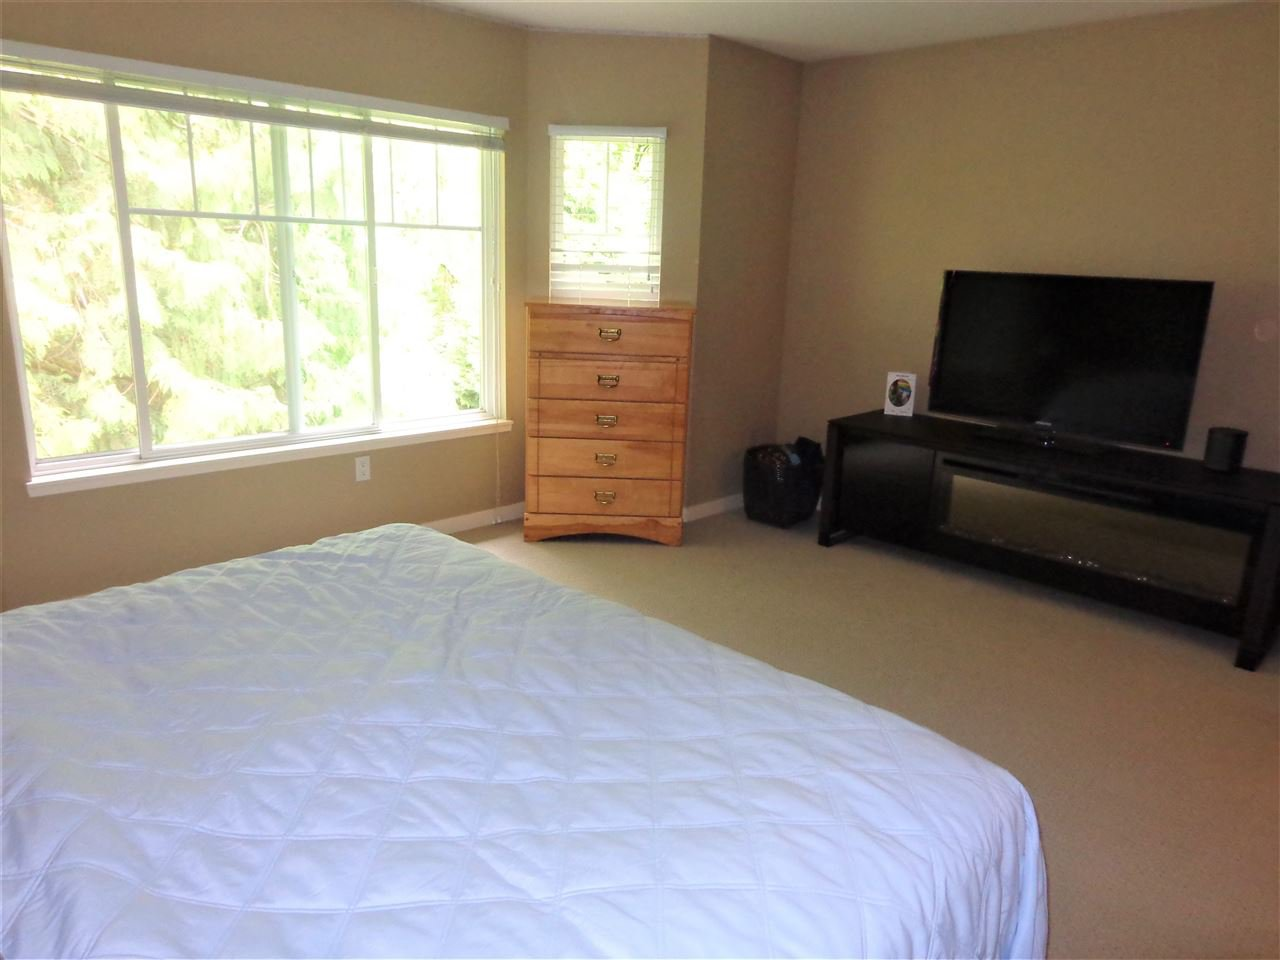 """Photo 13: Photos: 10 8588 168A Street in Surrey: Fleetwood Tynehead Townhouse for sale in """"The Brookstone"""" : MLS®# R2384013"""